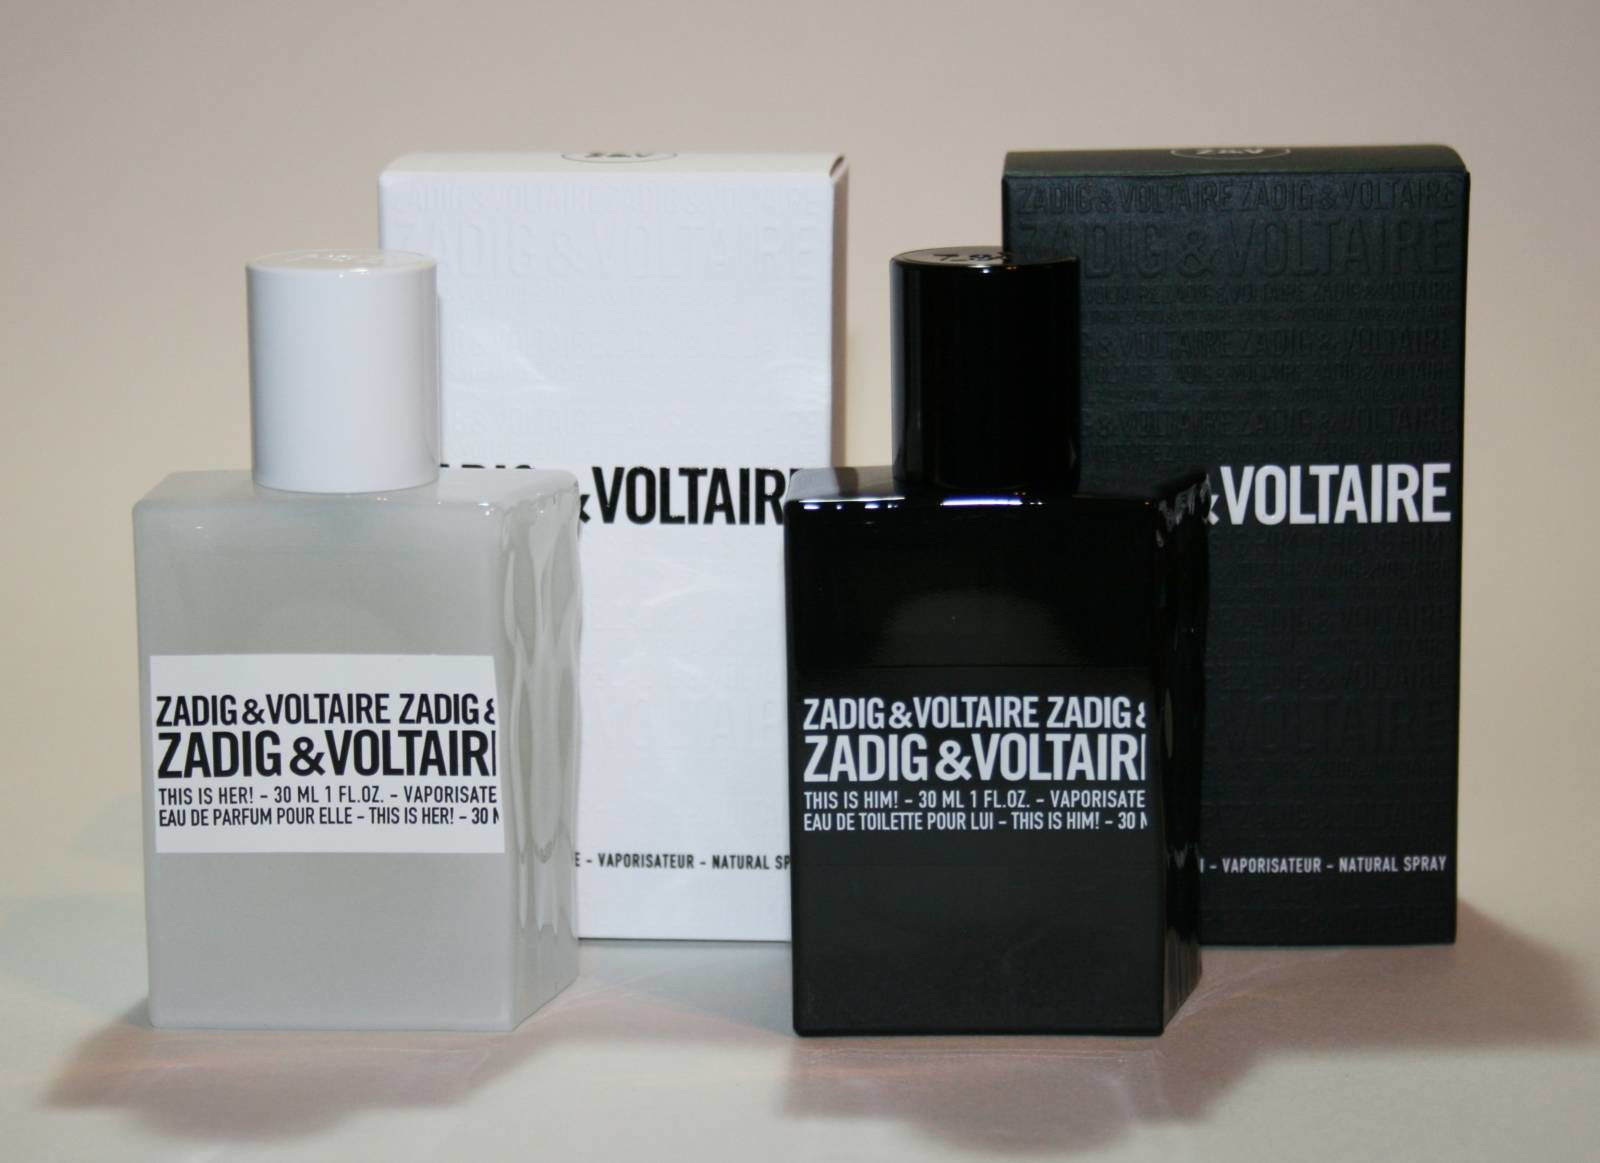 zadig-voltaire-this-is-her-this-is-him-fragrance-review